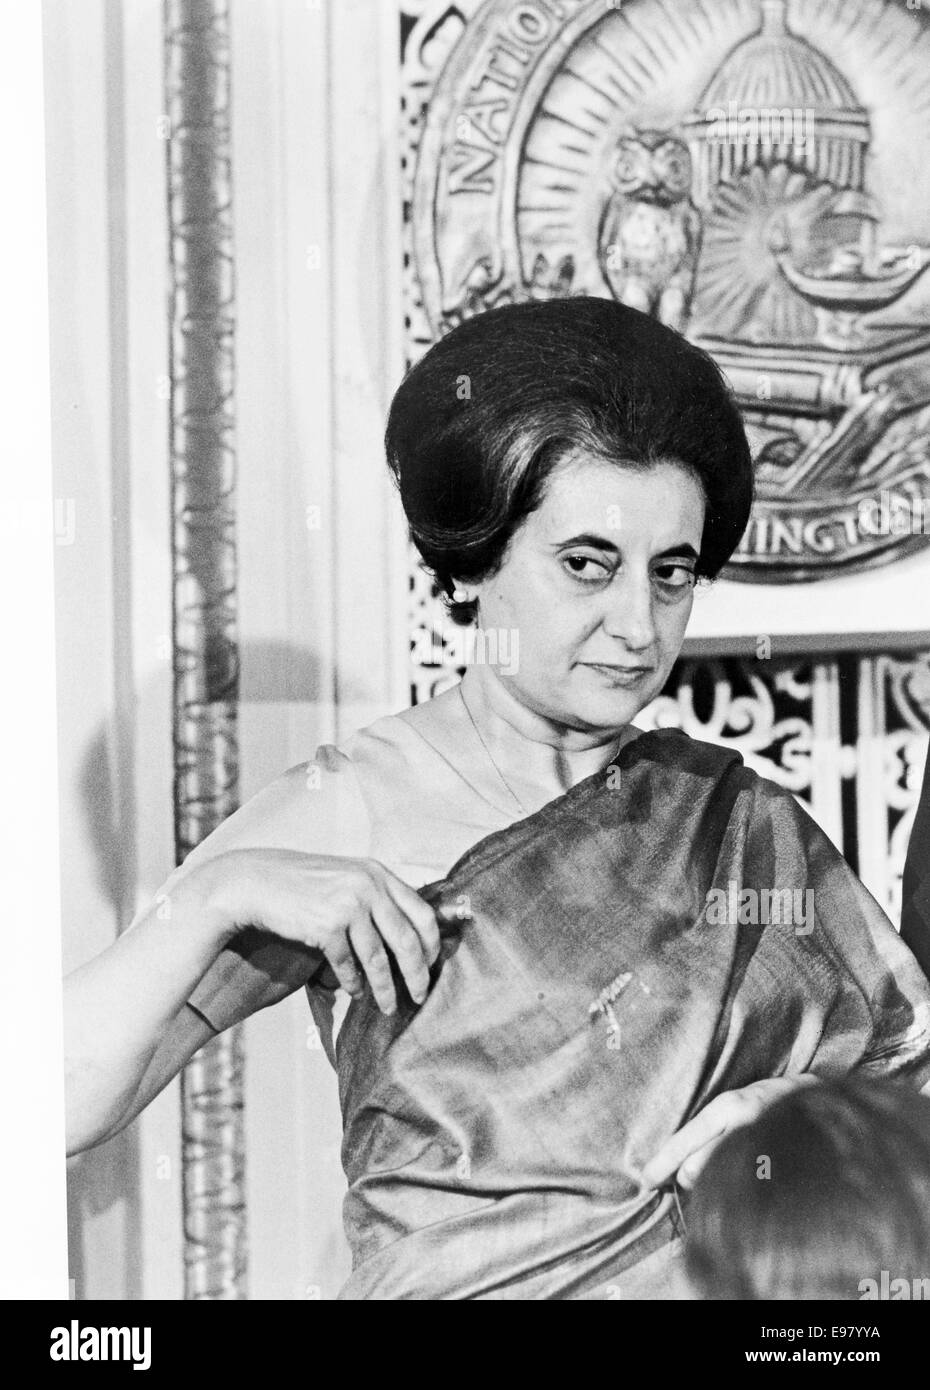 indira gandhi my favourite leader In the history of indian democracy indira gandhi was known as the most powerful prime minister of india sagarika ghose revealed many aspects of indira gandhi's life in her book.